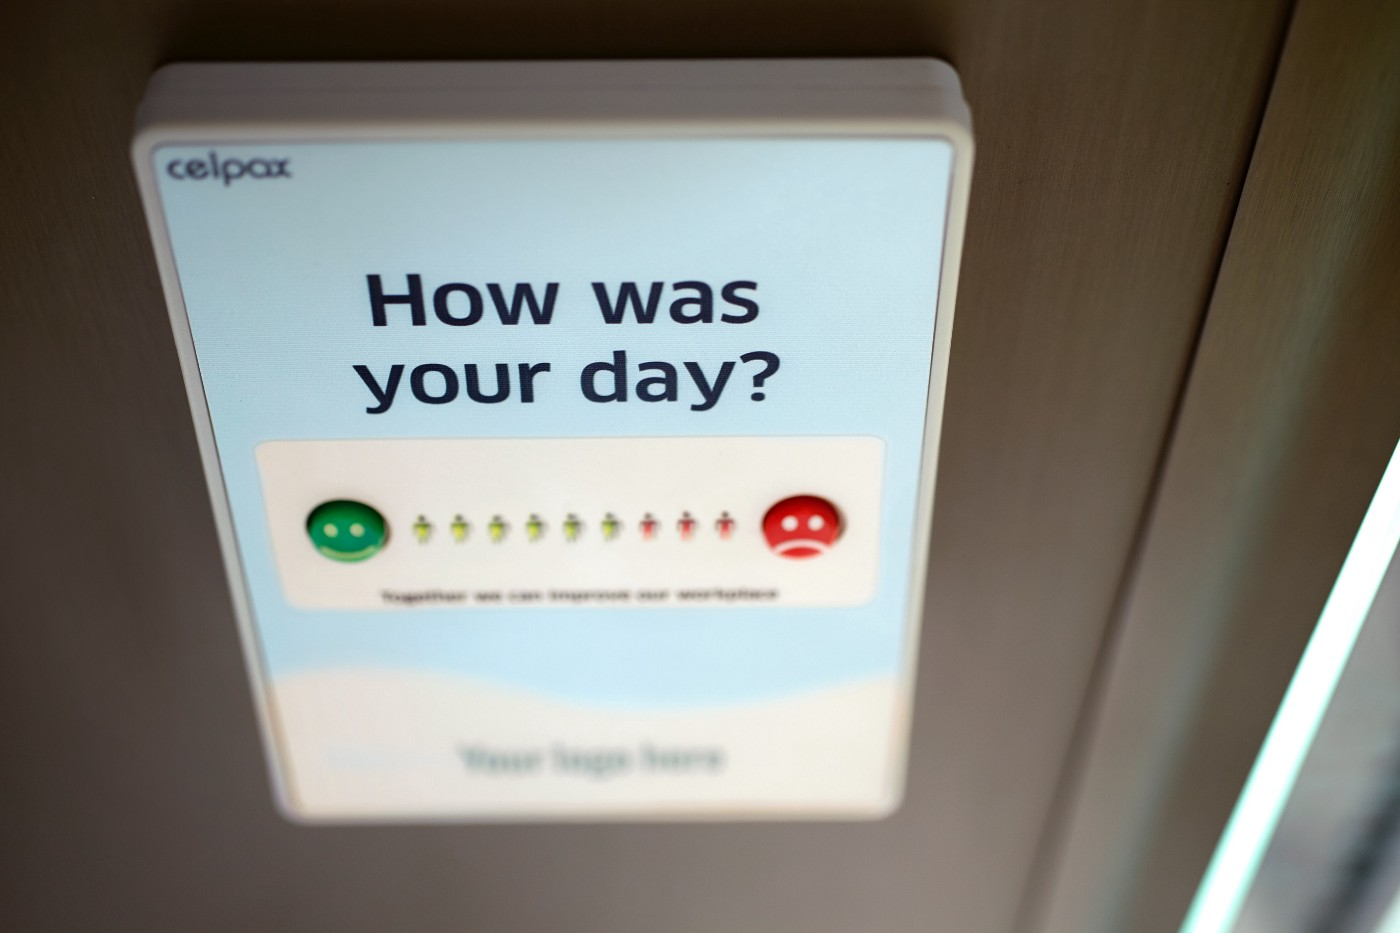 "A mobile phone is open with a prompt that says ""How was your day?"" A scale is shown ranging from a smiley face to a frown."